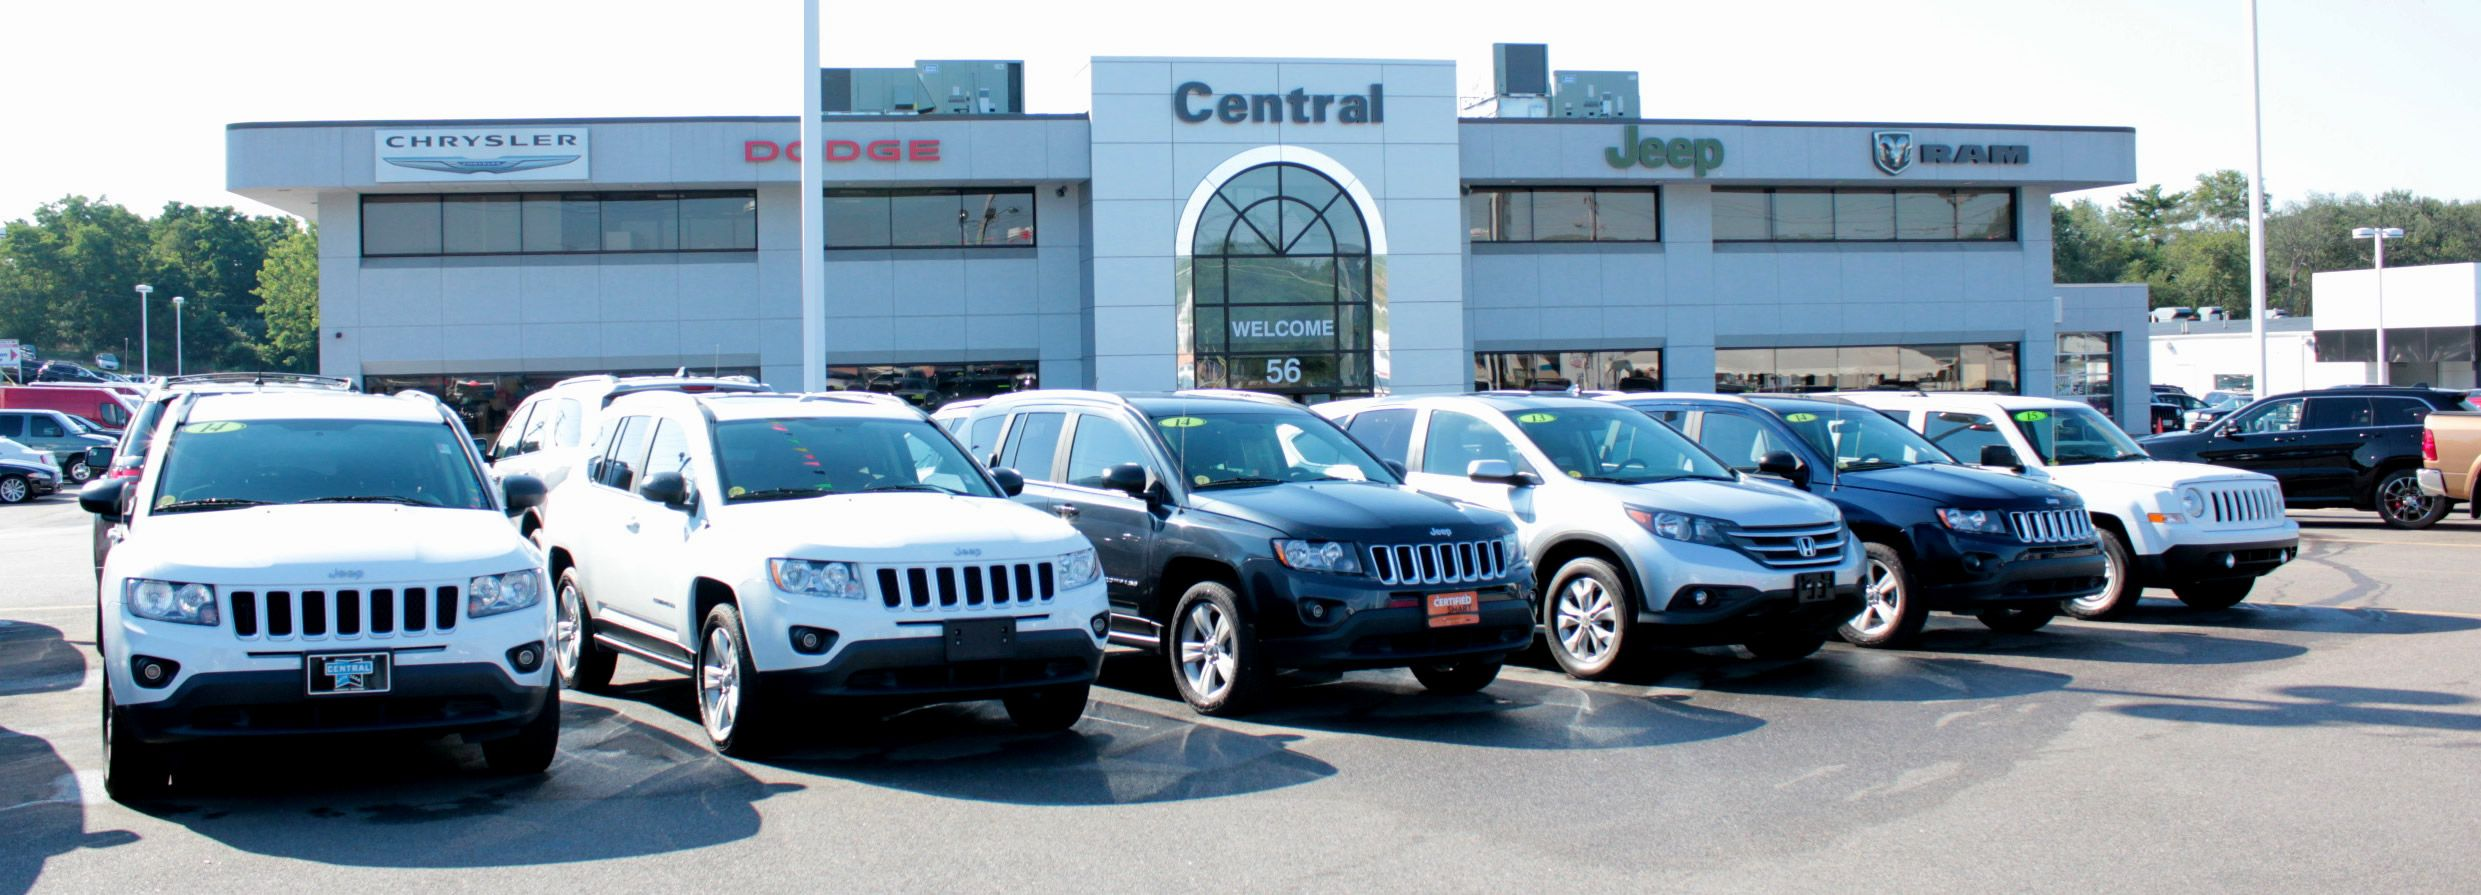 Central Chrysler Jeep Dodge In Norwood MA Robs - Chrysler dealers in ma